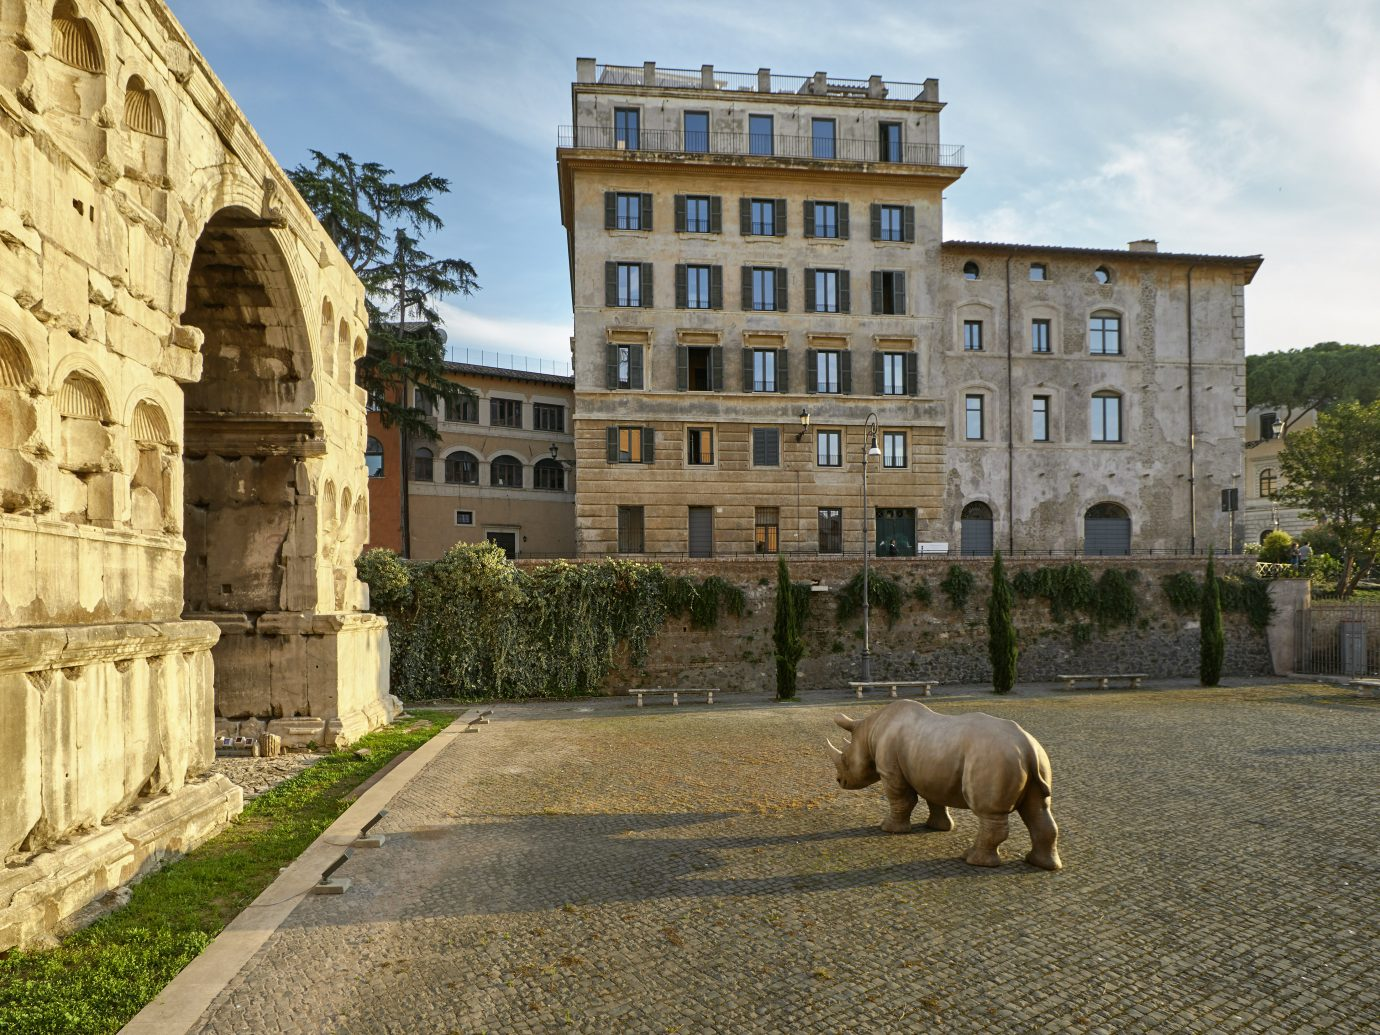 Rooms of Rome exterior